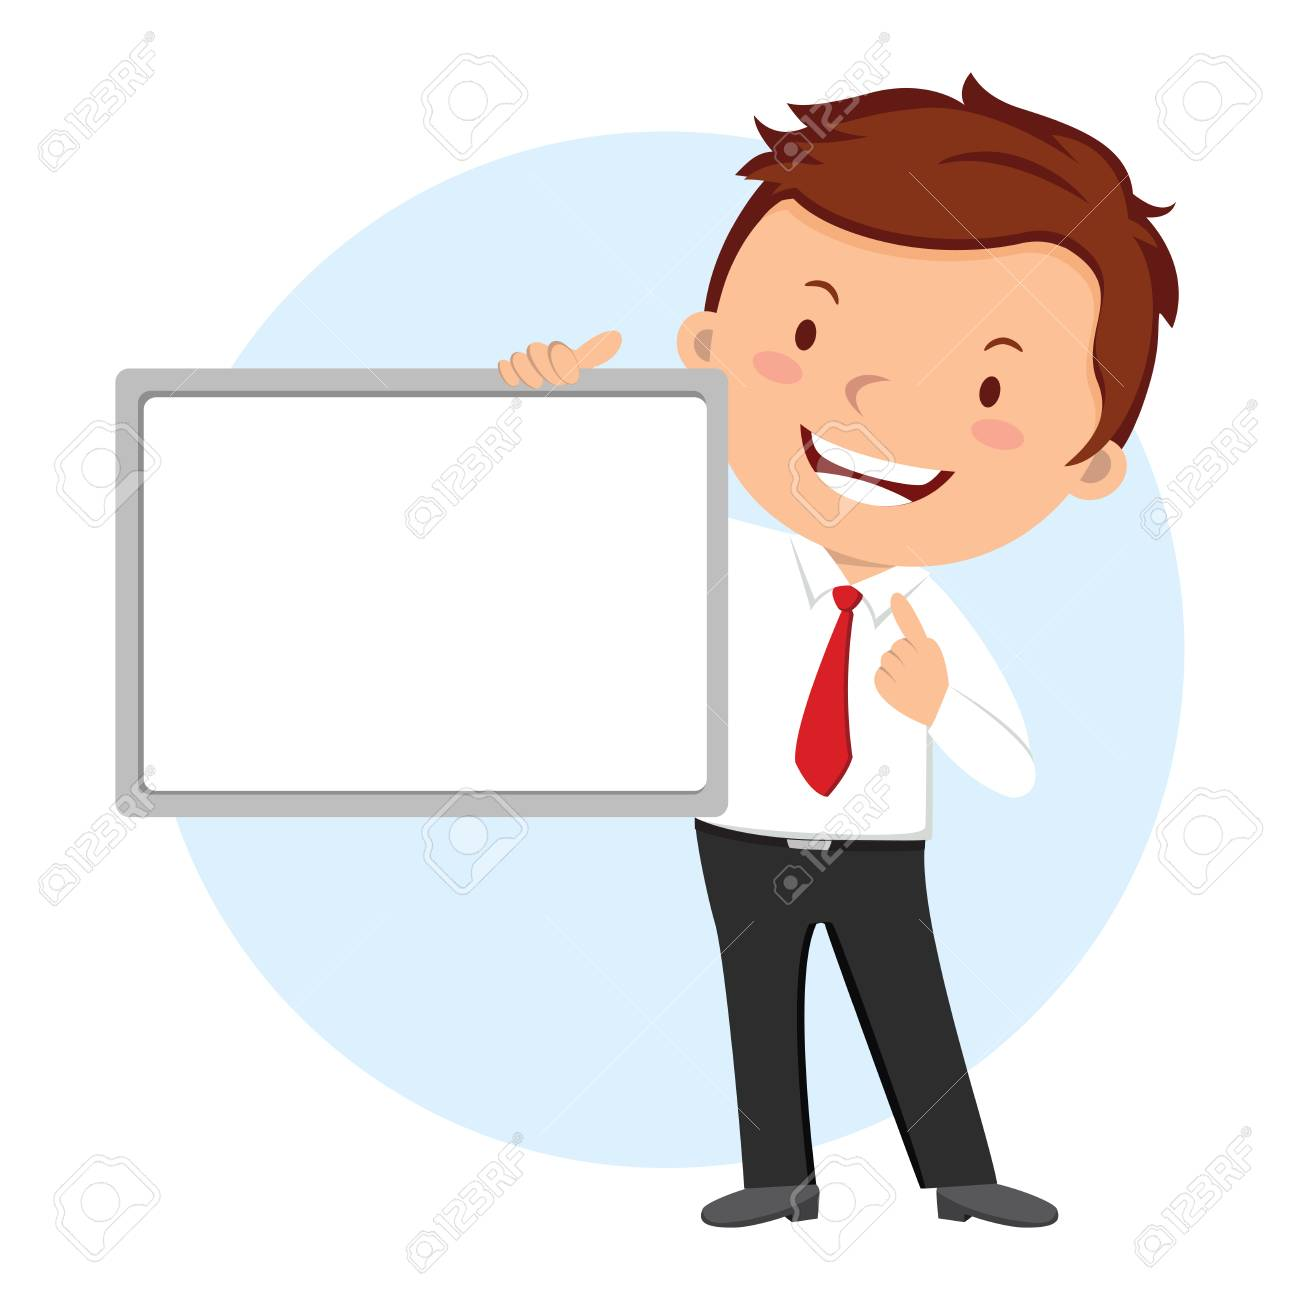 man holding whiteboard business presentation royalty free cliparts